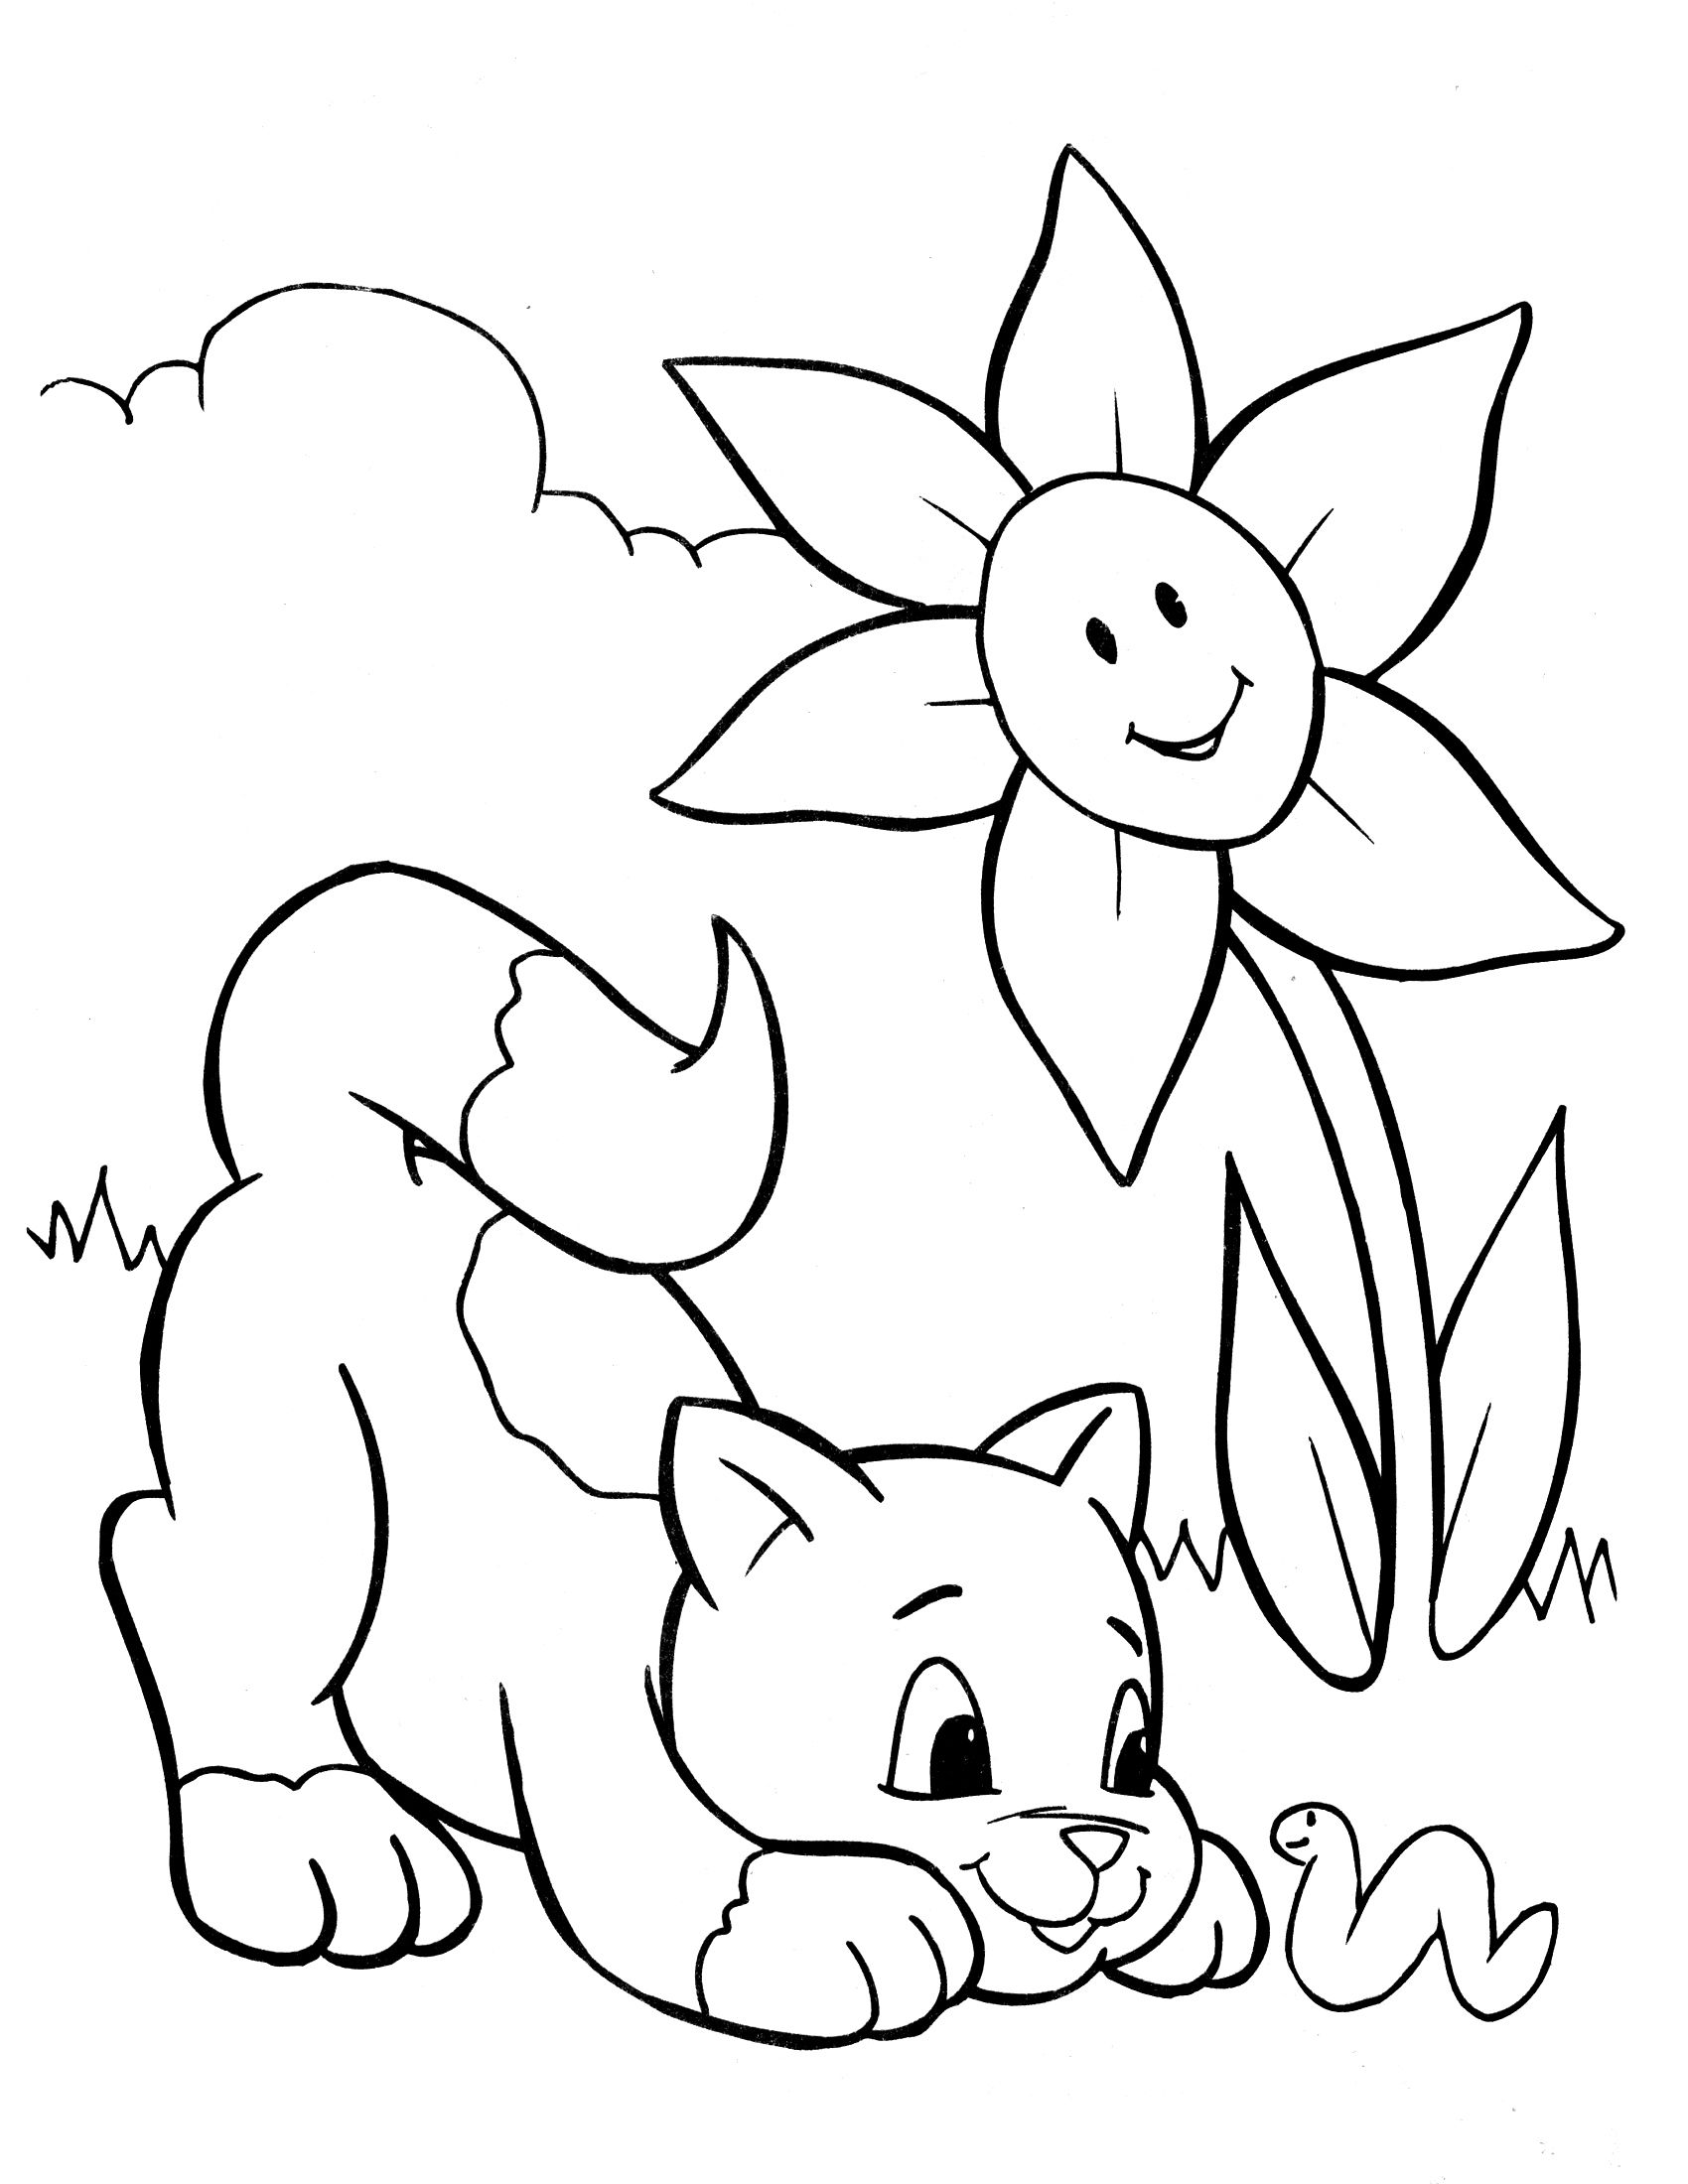 Crayola 12 Coloringcolor Com Kids Printable Coloring Pages Spring Coloring Pages Bunny Coloring Pages